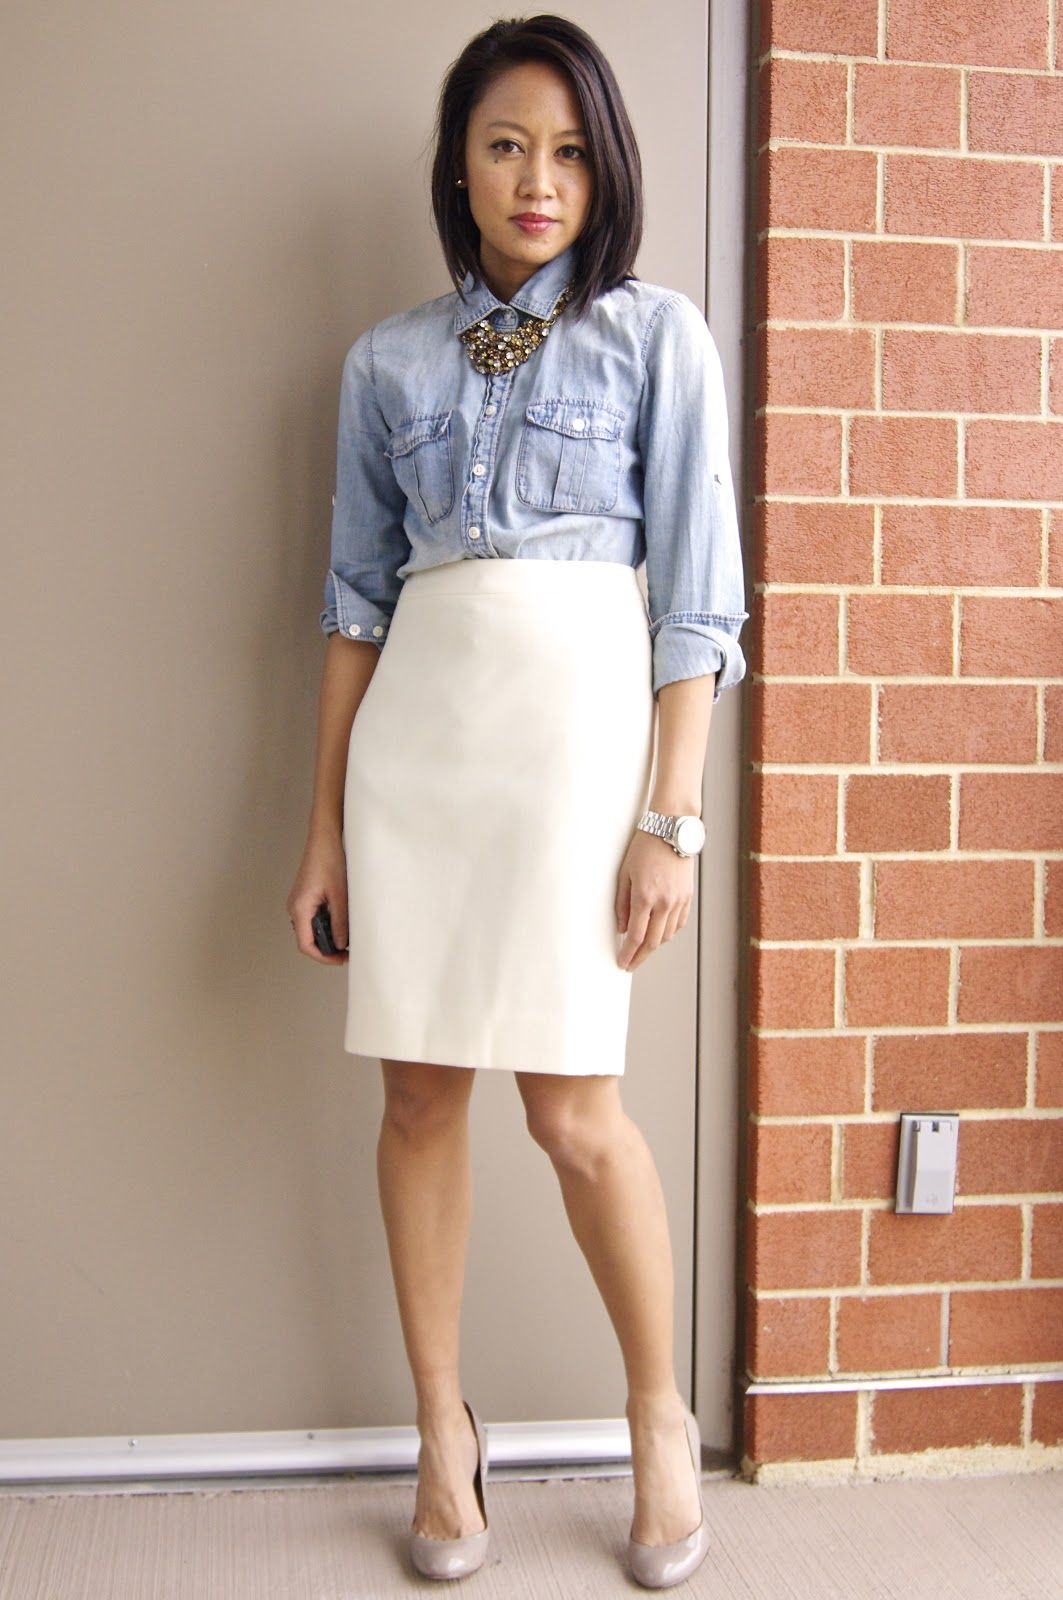 b09be0915 Winter white pencil skirt | Things to Wear | Winter skirt outfit ...